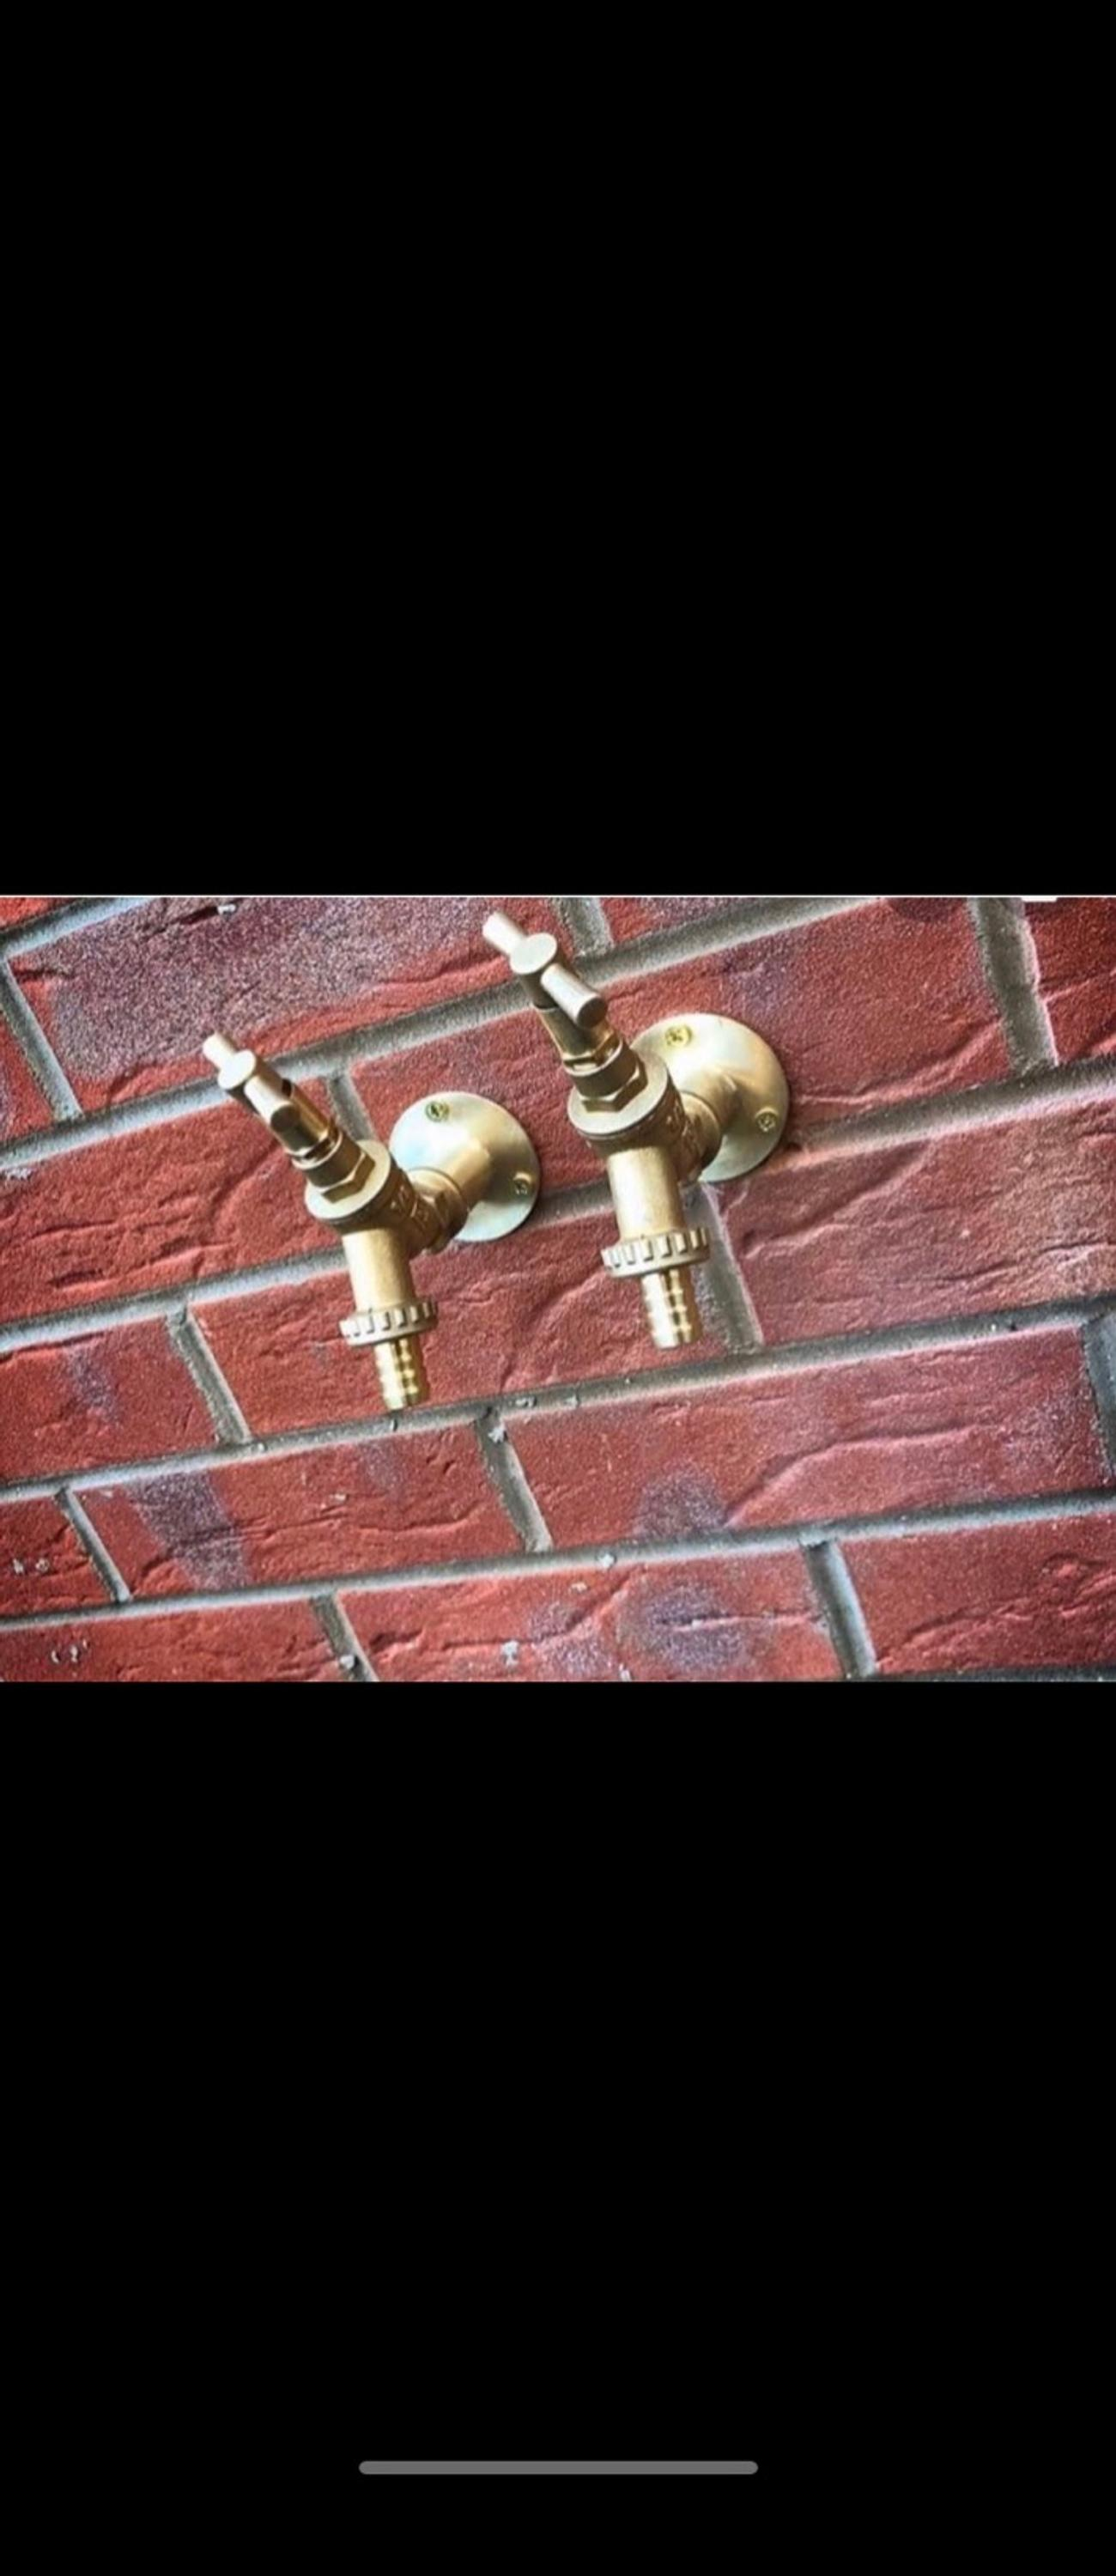 Outside taps and any other plumbing work. Supplied&fitted tap cold £50 Supplied&fitted Tao hot £50 Supplied fitted tap hot and cold, double tap £100 ——————————- (If you have your own taps) Cold £35 Hot £35 Double £70 ——————————— Any other plumbing jobs, don't hesitate to ask..